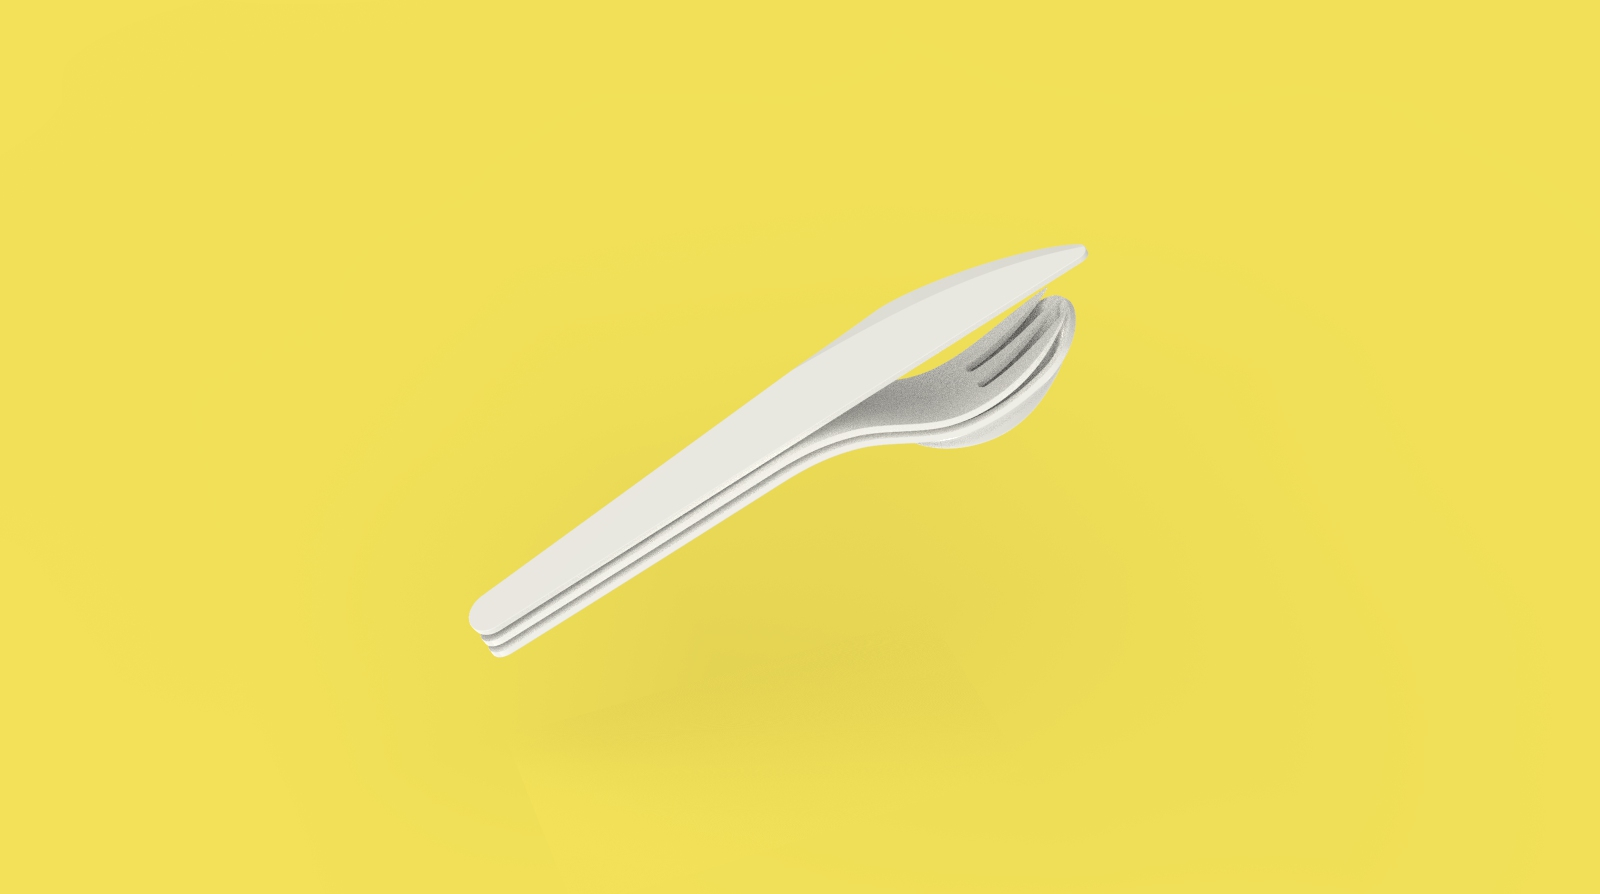 utensils_front_white_paired_up_yellow.345.jpg